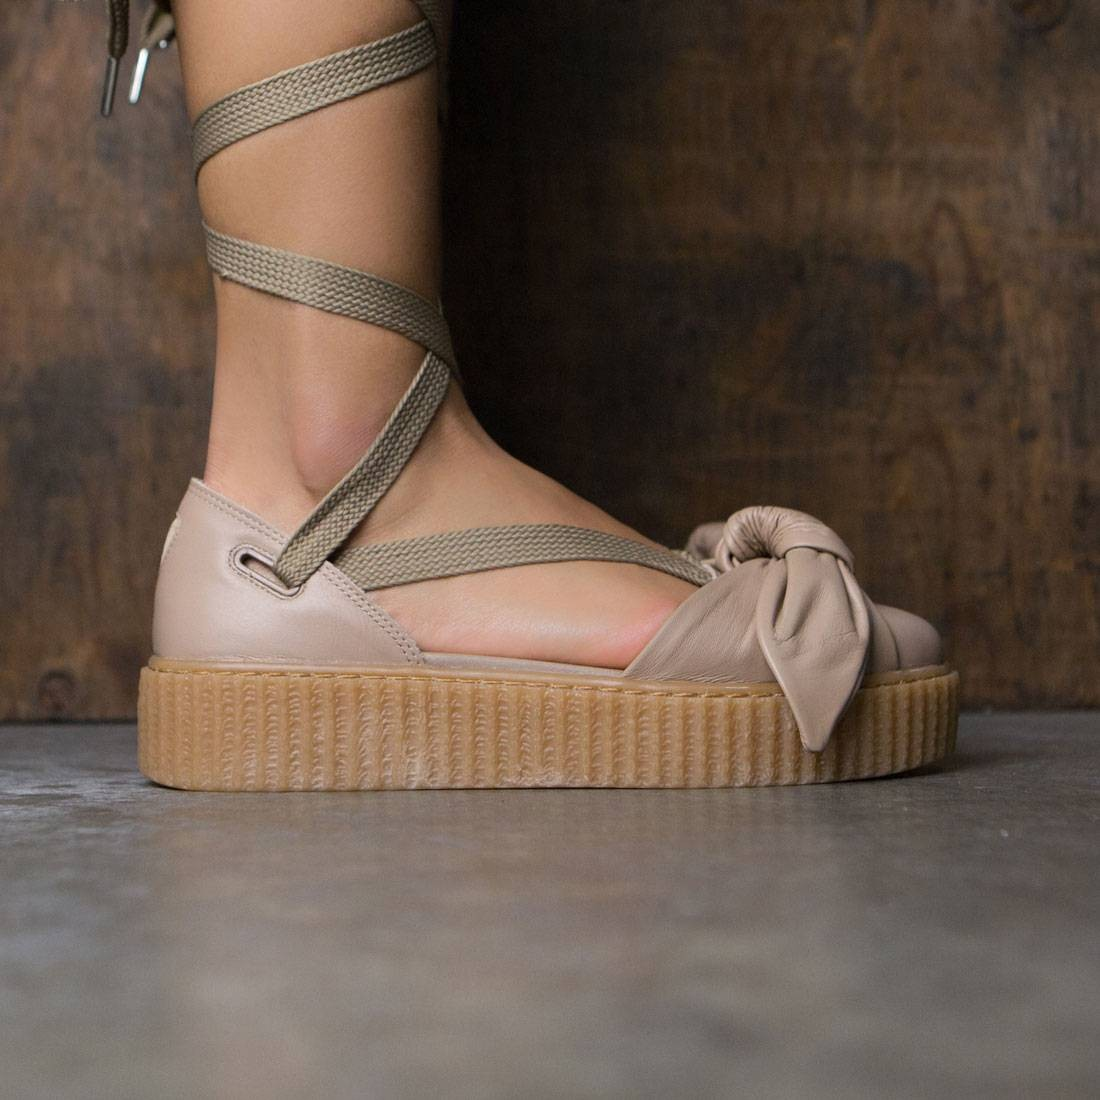 competitive price 67ac2 f5e9c Puma x Fenty By Rihanna Women Bow Creeper Sandal (natural / oatmeal)